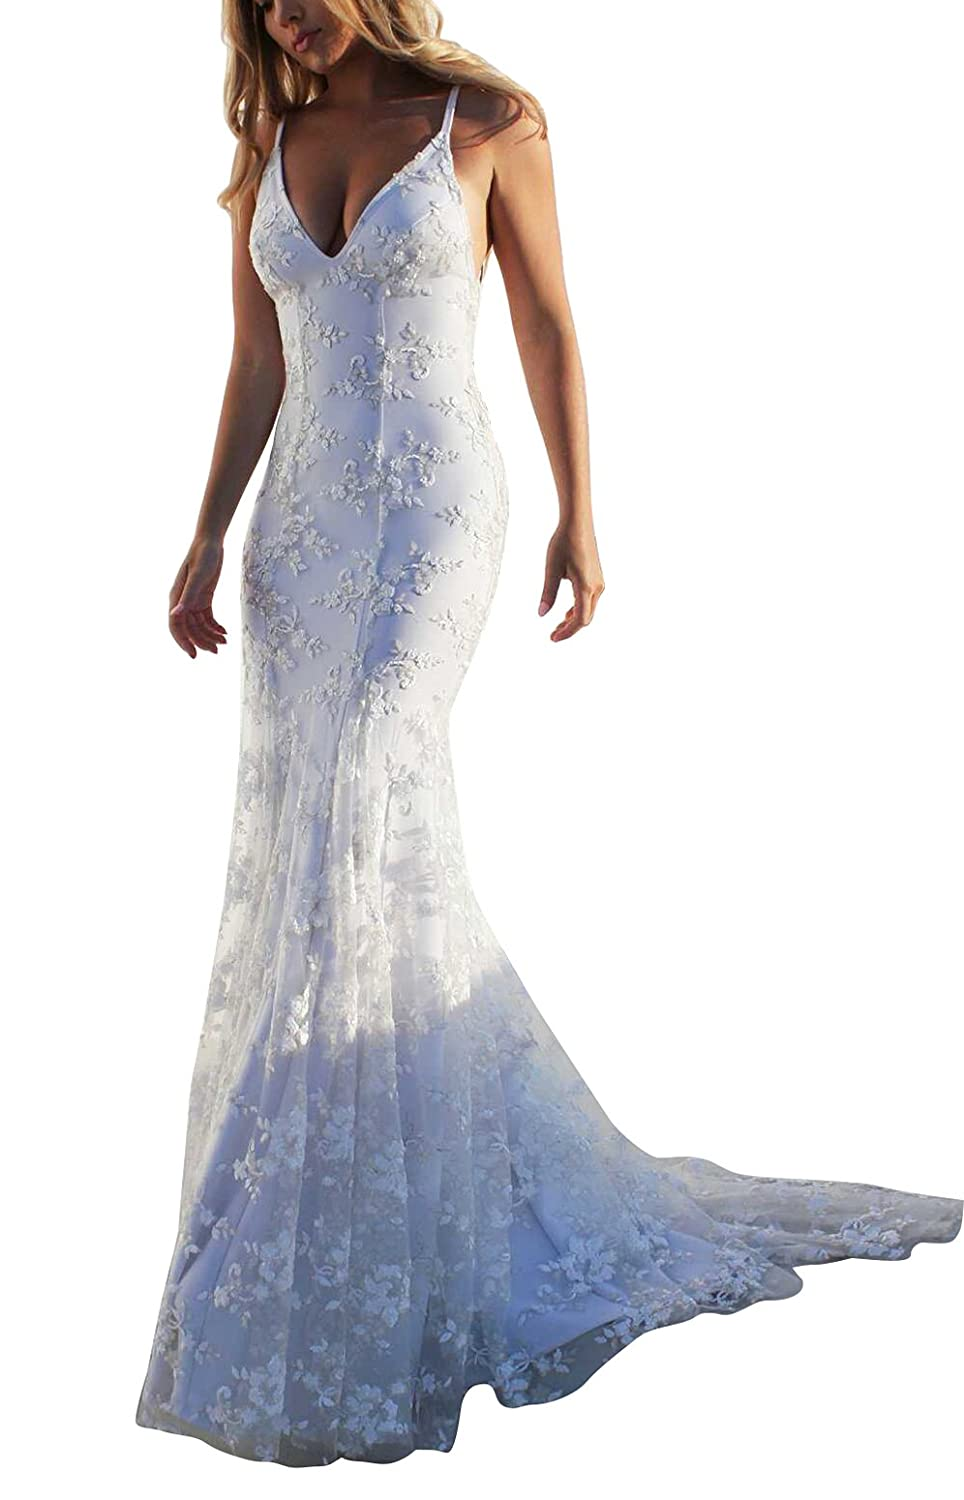 eeee3516a Newdeve White Beach Wedding Dress Lace Applique Strap Backless Slim Fit  Sexy Dresses at Amazon Women's Clothing store: